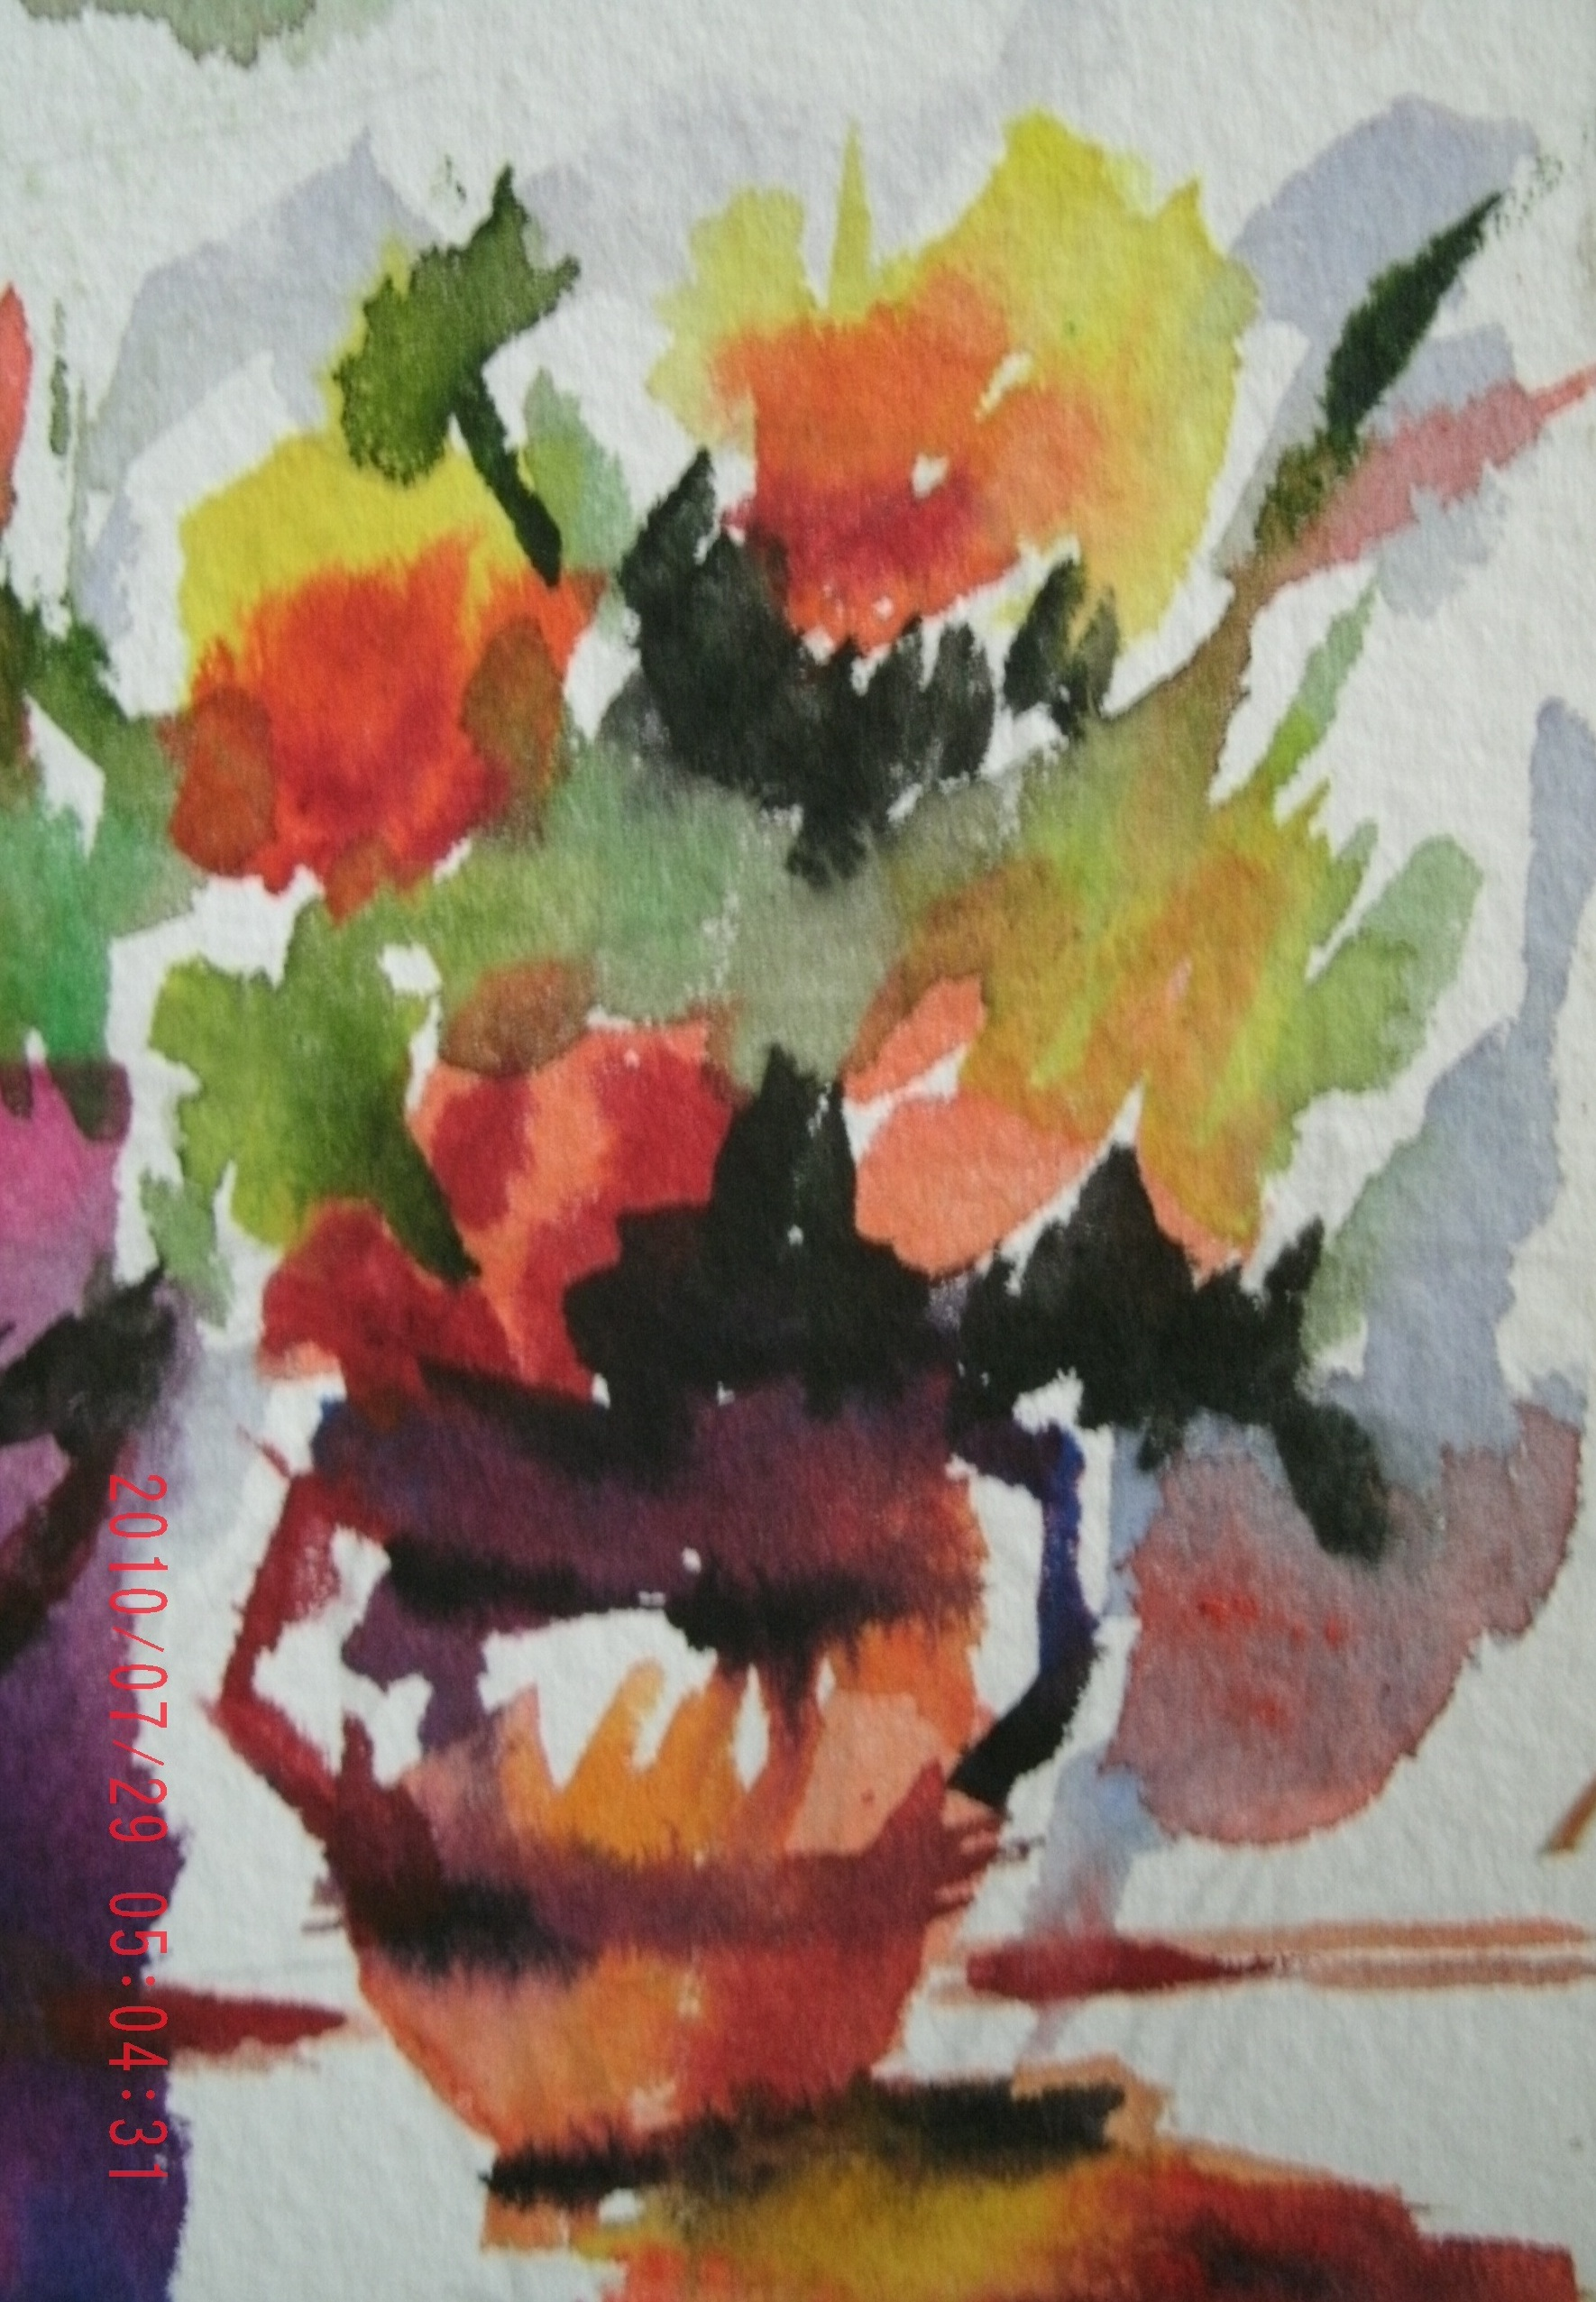 AN ABSTRACT BOUQUET OF FLOWERS - AVAILABLE AS A PRINT